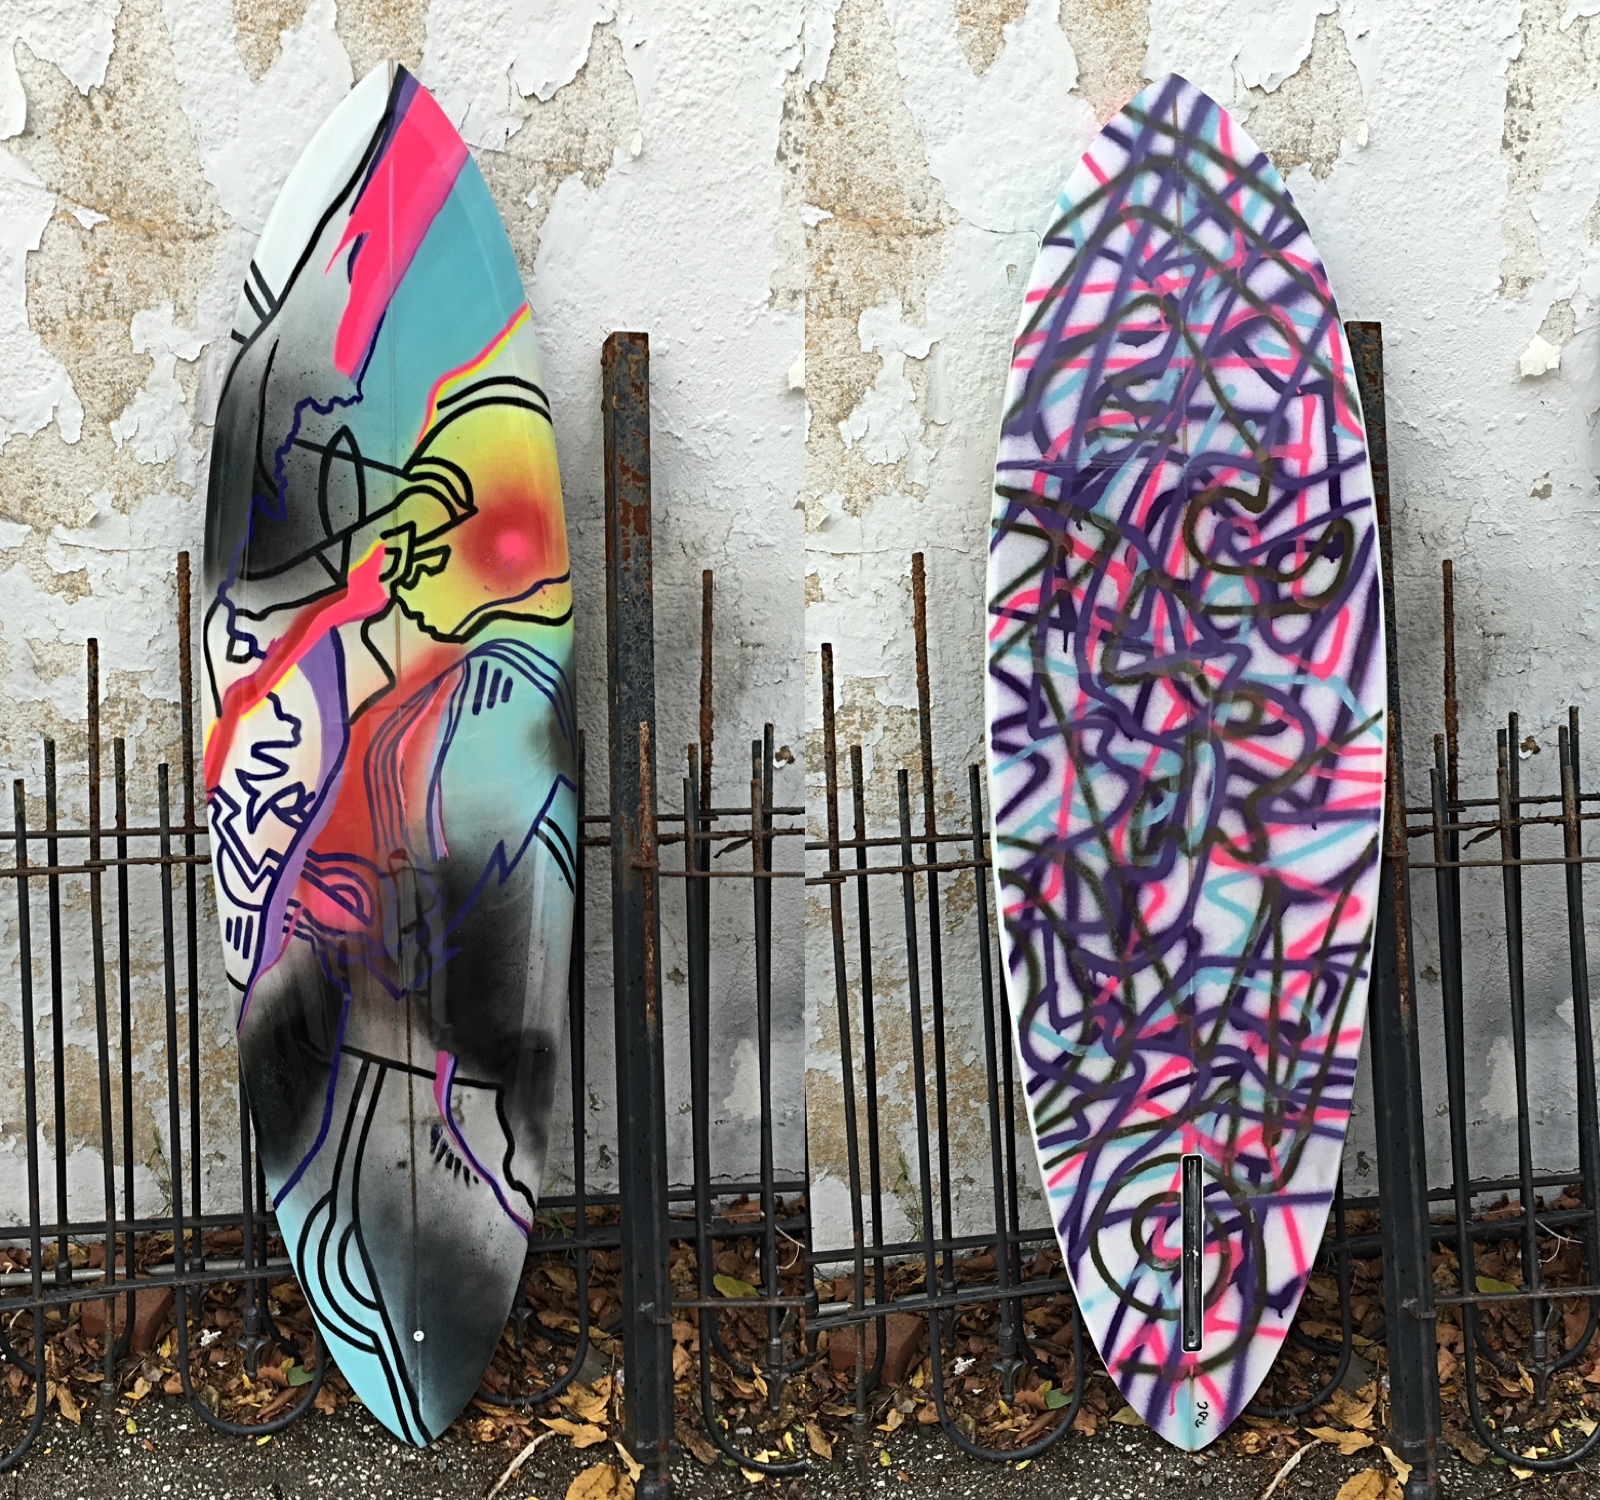 Collaboration with DCal Shapes for Juxtapoz Mag Show to Benefit Waves4Water at Mana Contemporary